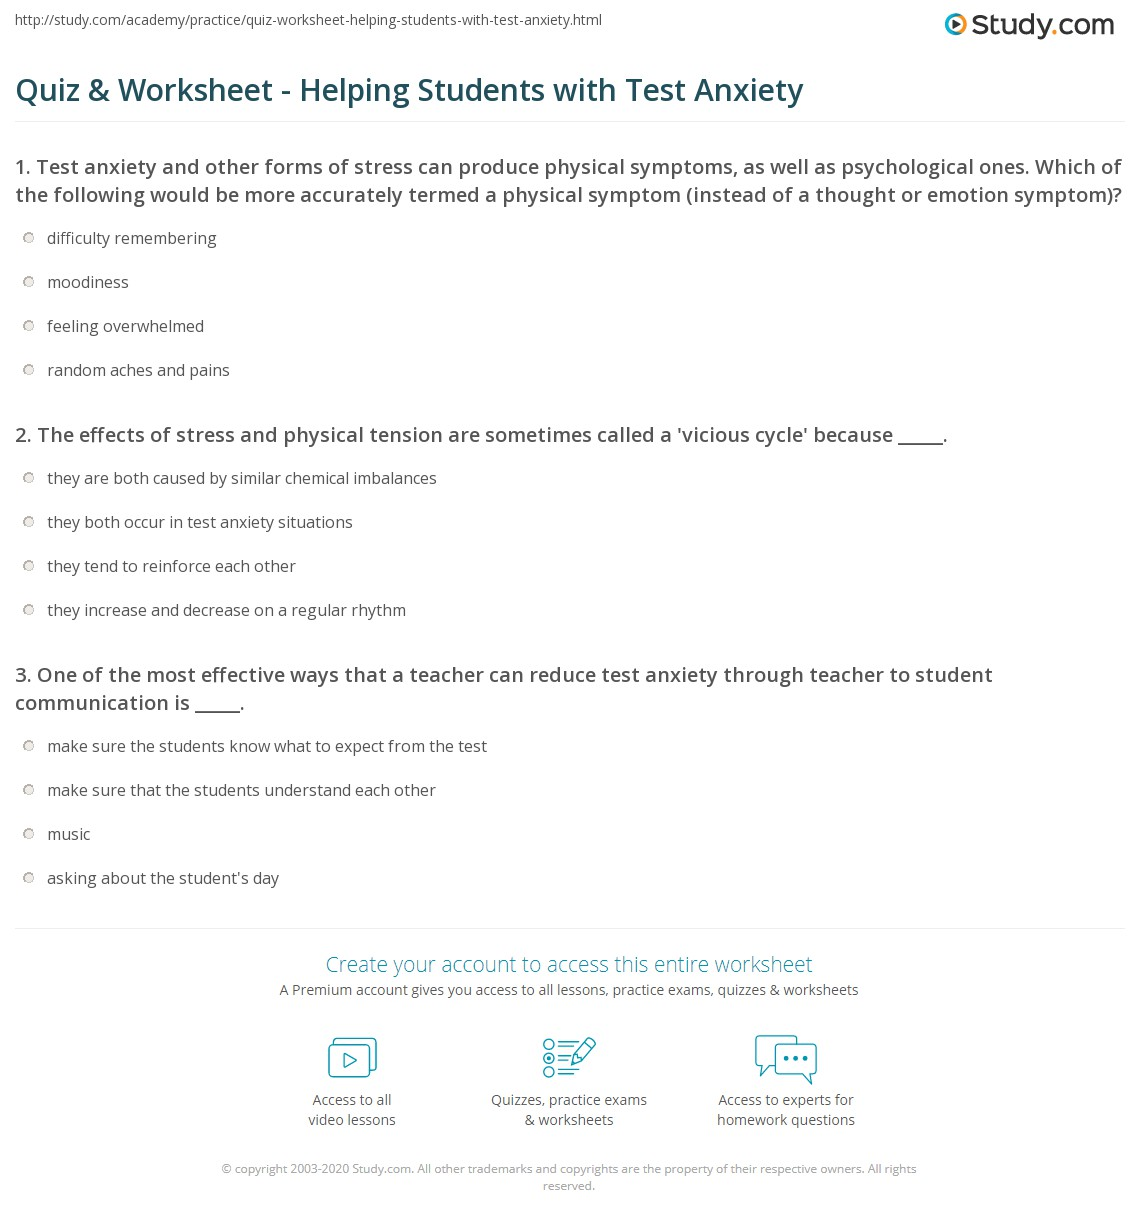 Worksheets Test Anxiety Worksheets quiz worksheet helping students with test anxiety study com print how to help worksheet